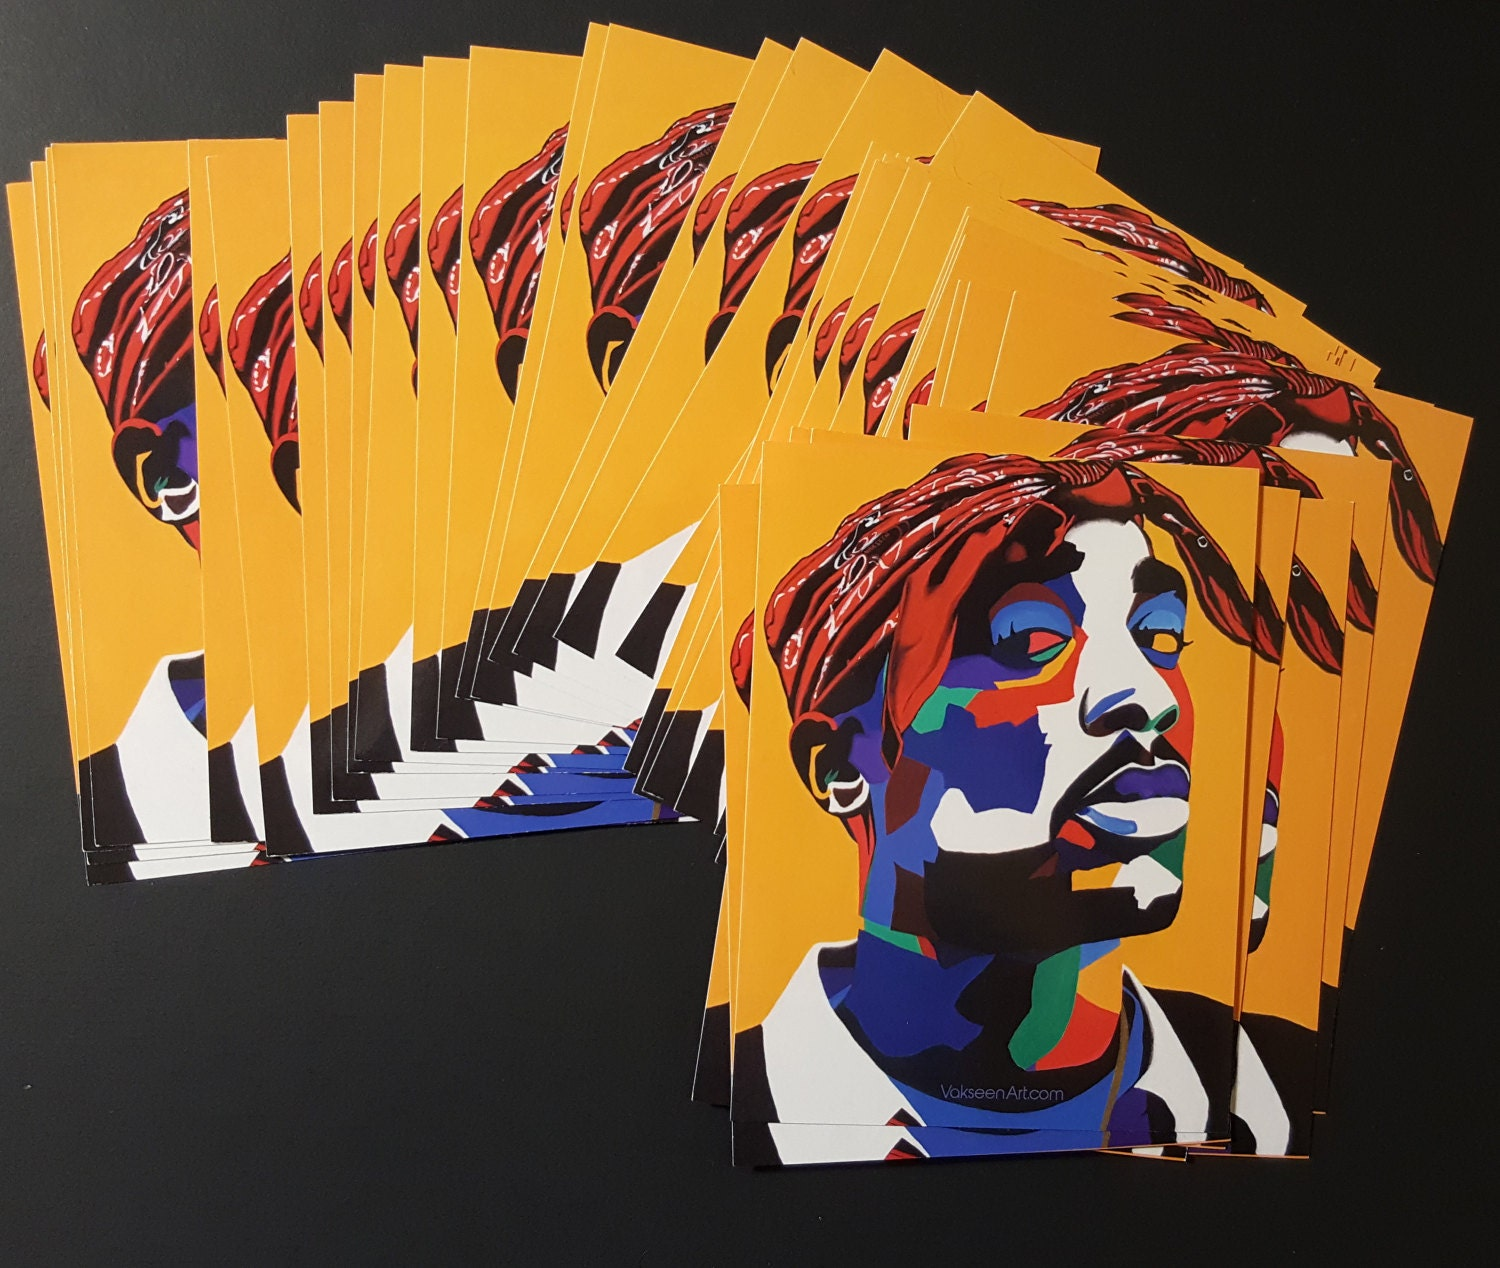 Chang3d Man Vakseen 2Pac Tupac 2Pac Sticker Hip Hop